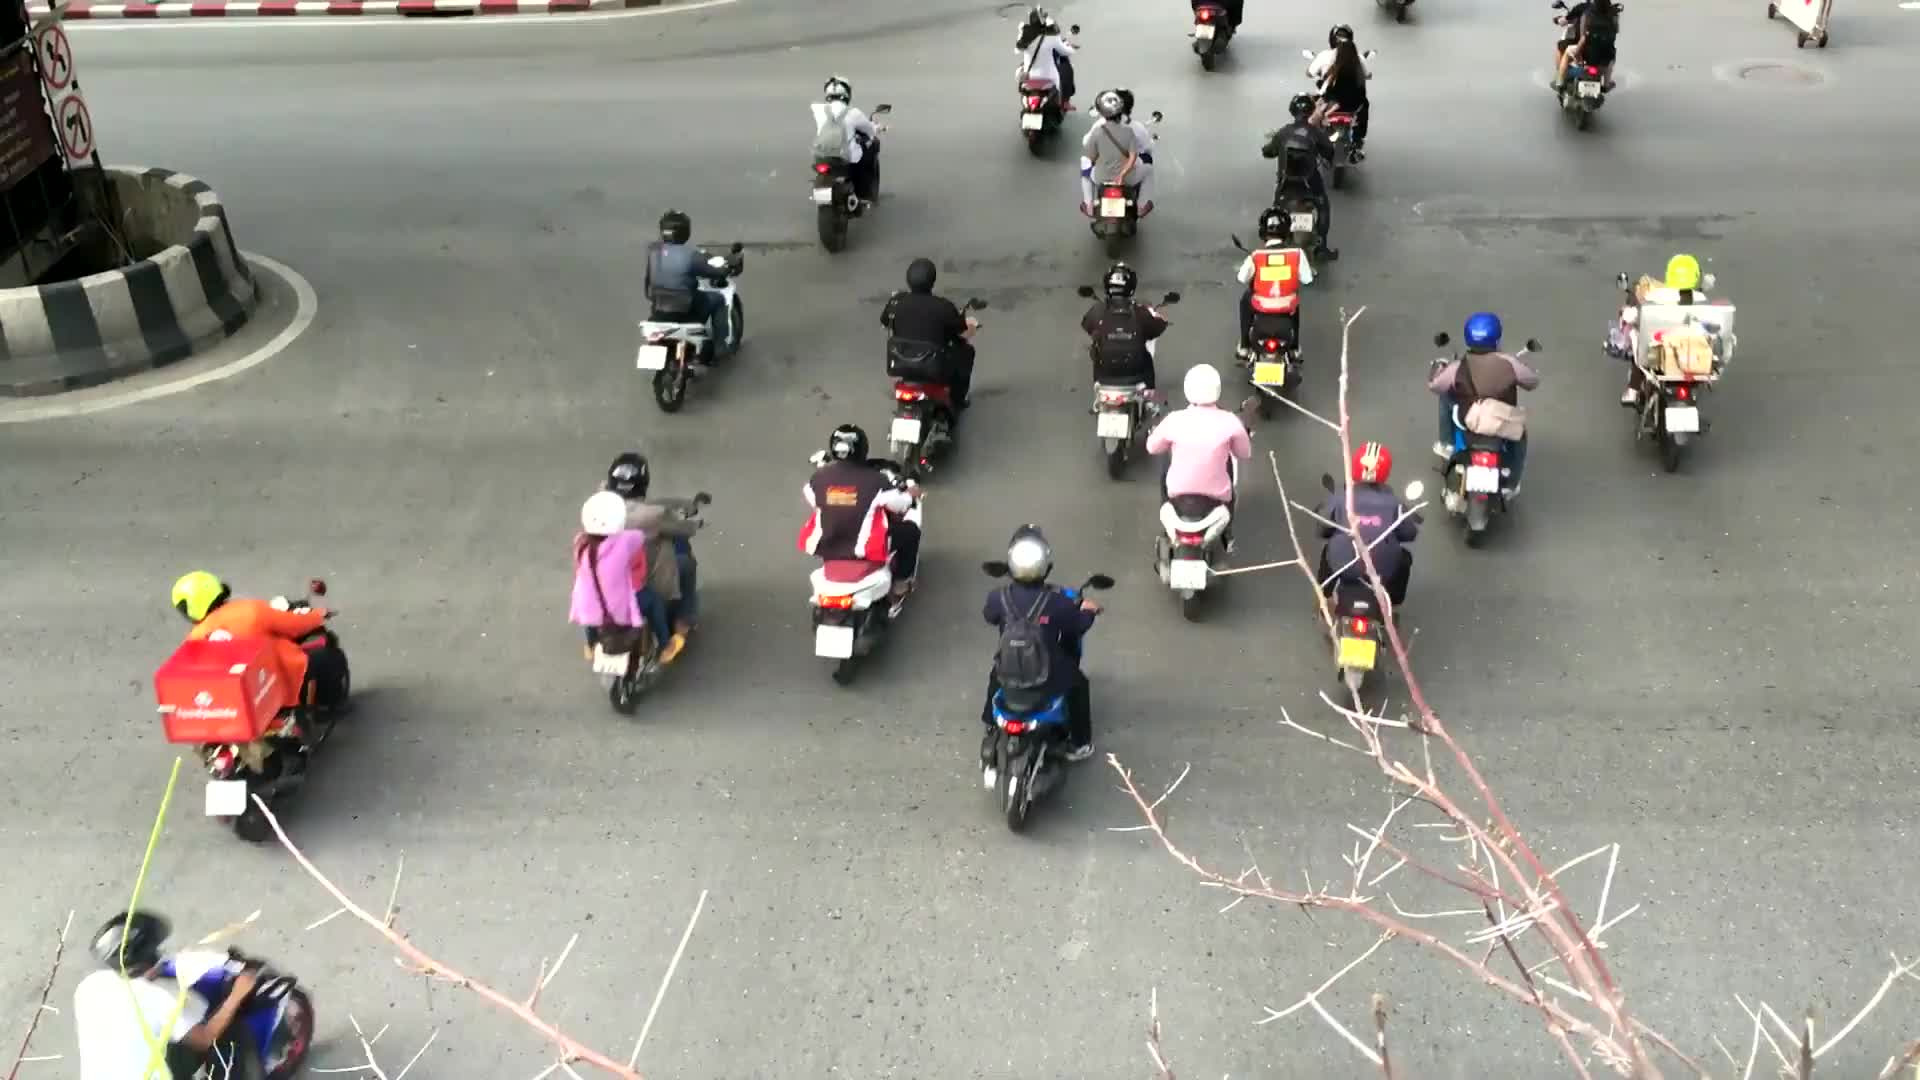 Video of motorcycles and cars on the road